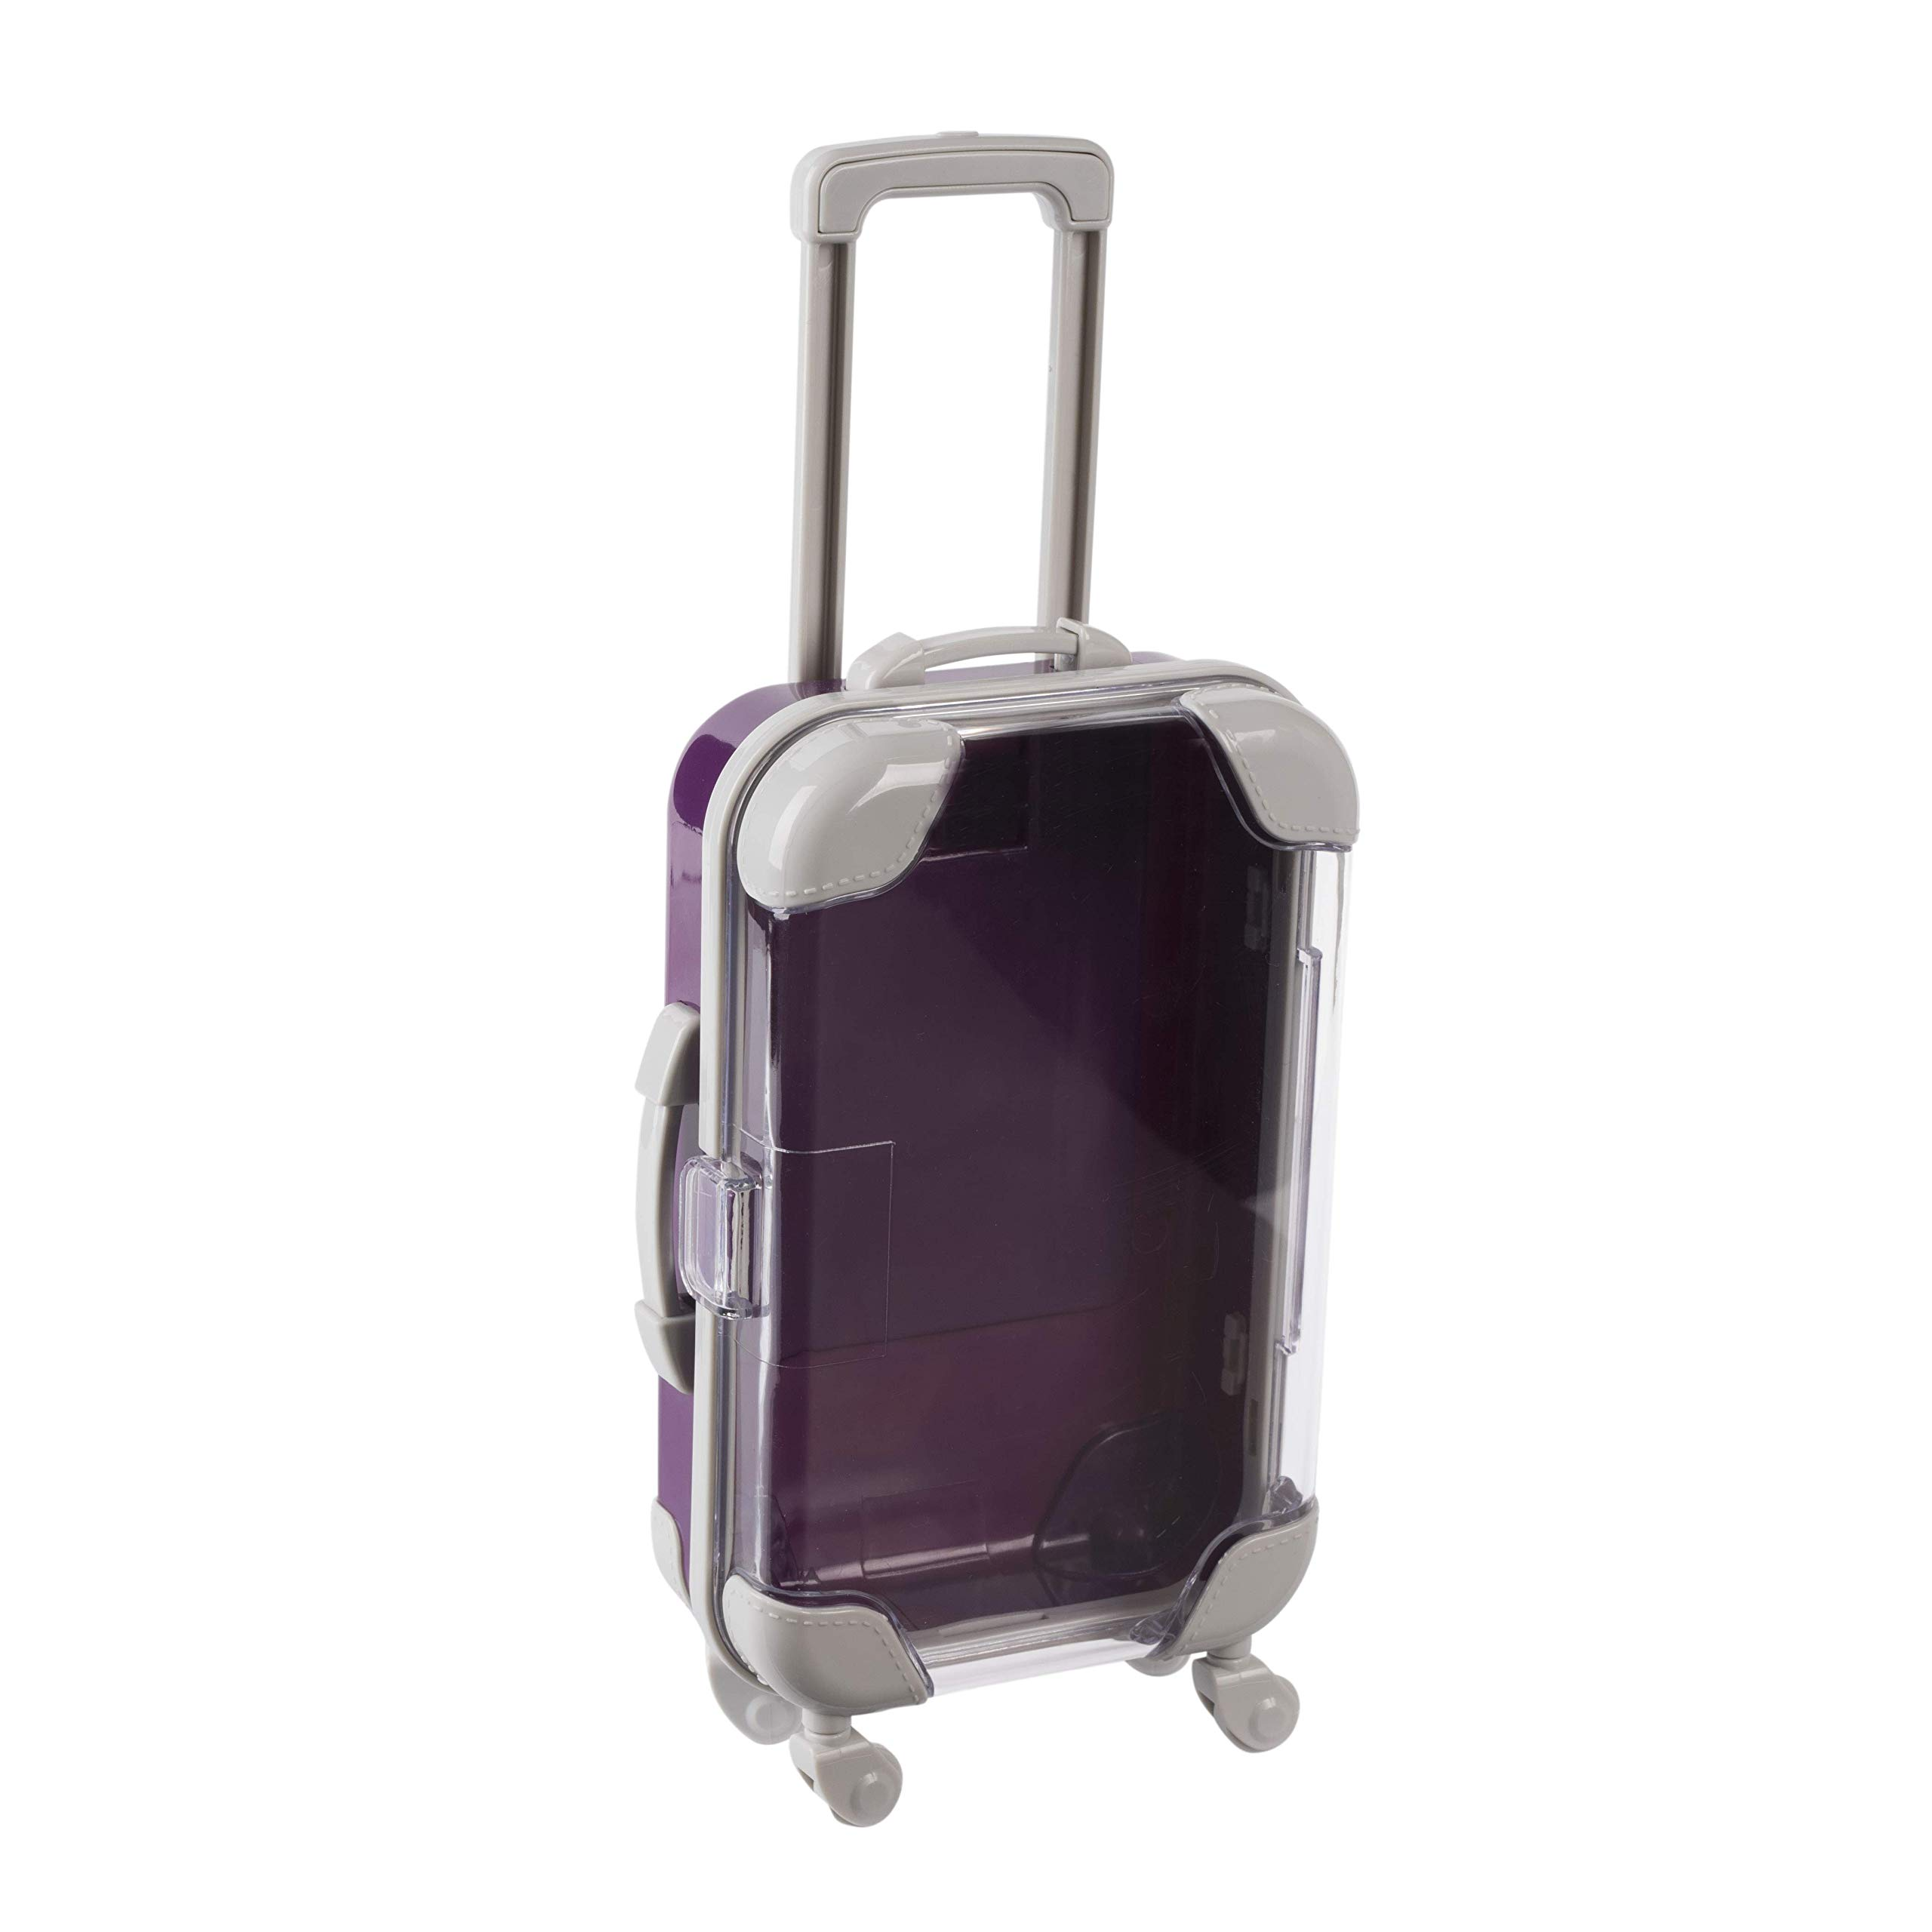 "Hammont Mini Suitcase Candy Box – Miniature Plastic Rolling Suitcase with Transparent Lid | Perfect for Travel Theme Parties and Celebrations | 5.5"" x 3.5"" x 1.5"" (Pack of 4) (Purple)"